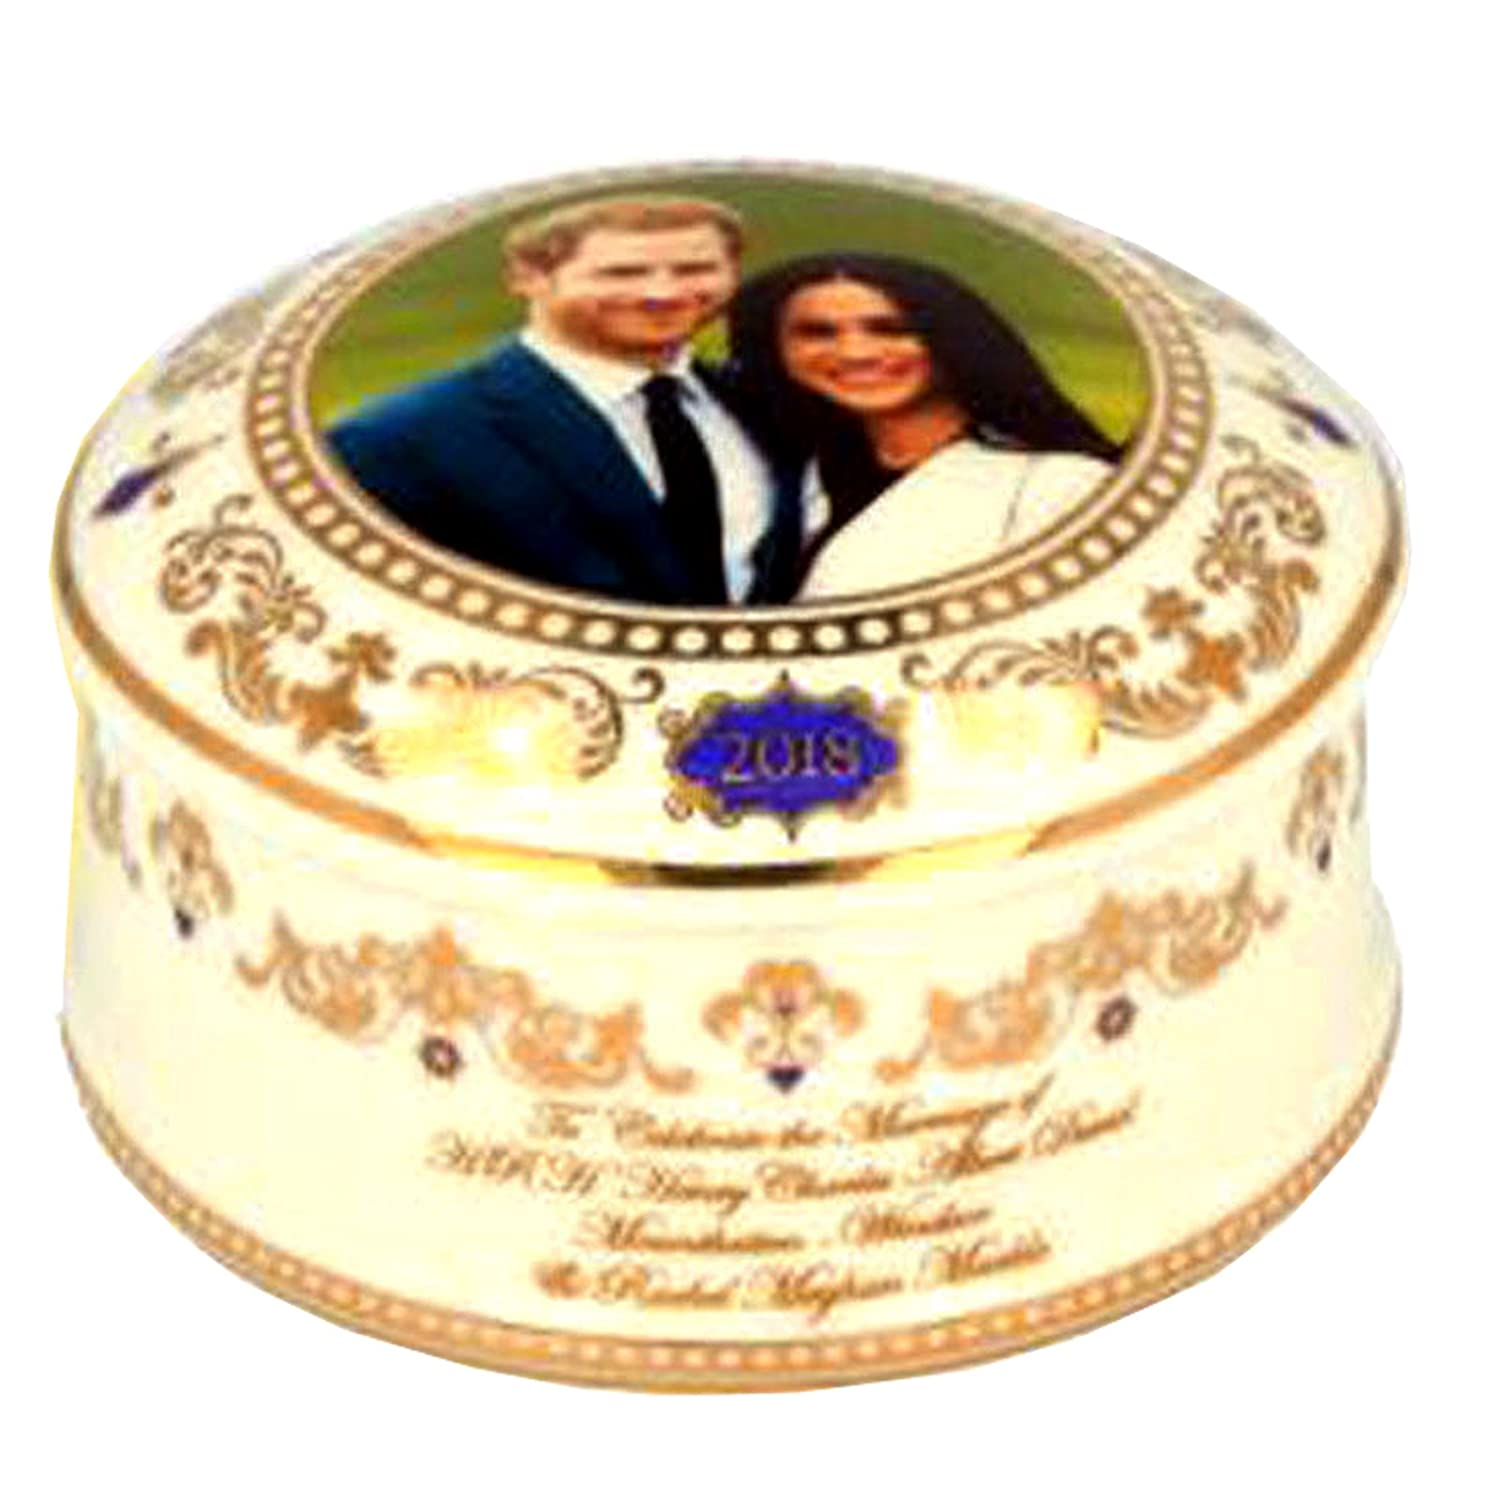 H.R.H. Prince Harry & Meghan Markle Royal Wedding 19th May 2018 Commemorative Ceramic Trinket Box Elgate 72163